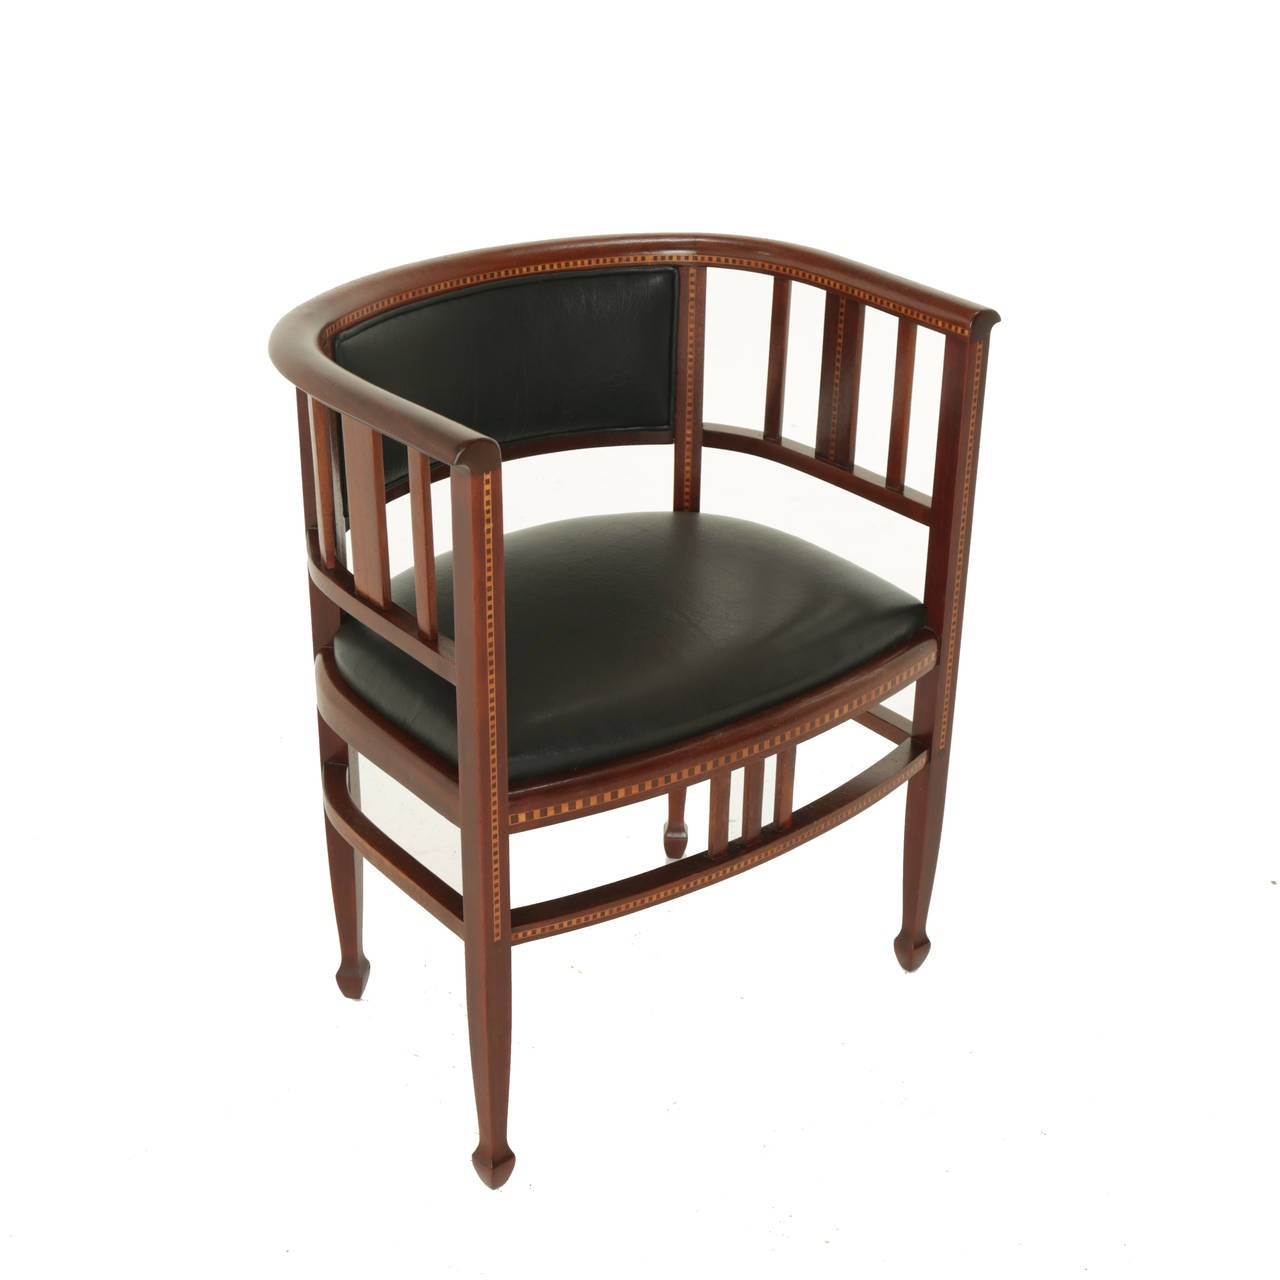 Brazilian exotic hardwood chair with sculpted feet and